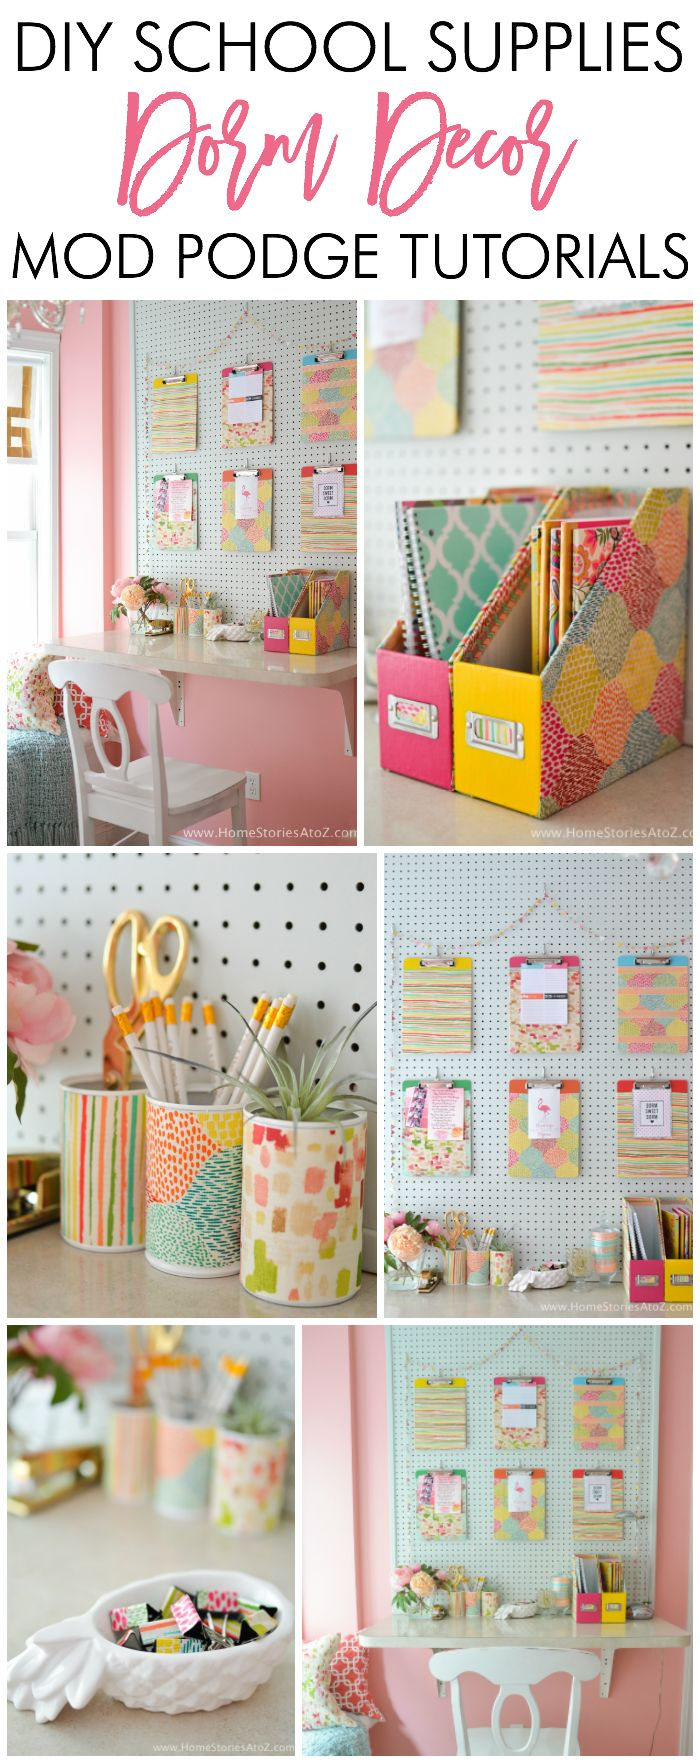 'Adorable DIY Dorm School Supplies Dorm Decor w/ Tutorials...!' (via Home Stories A to Z)